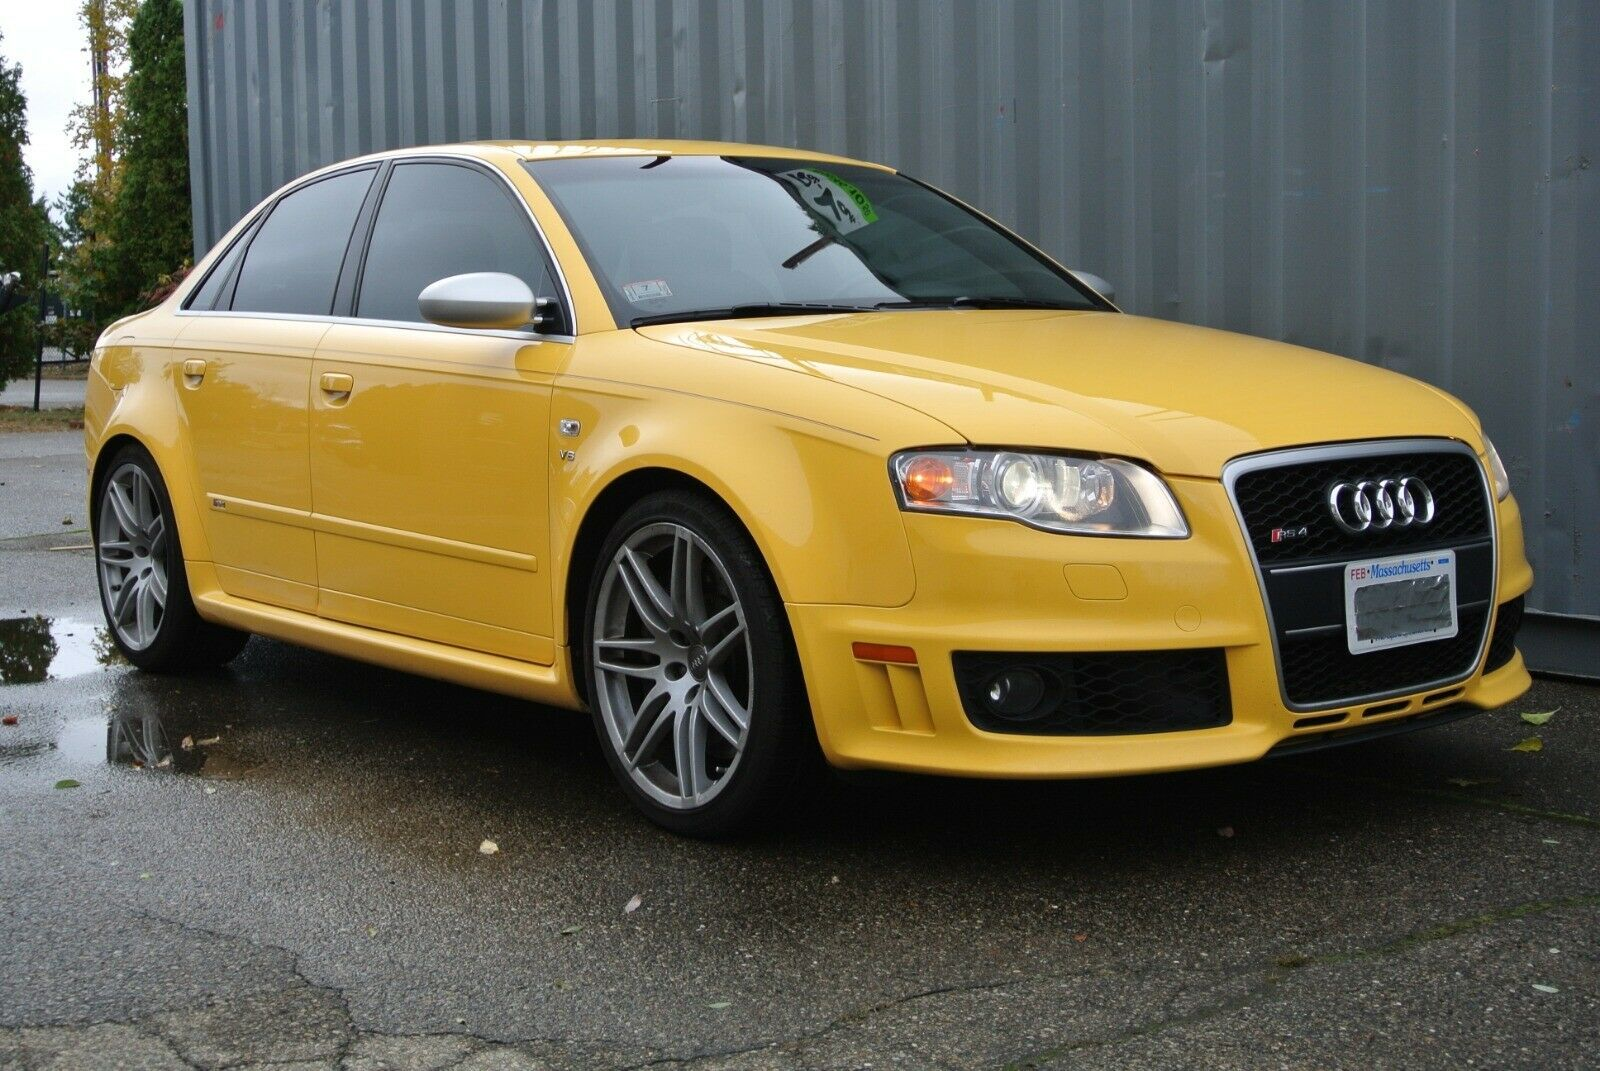 Spice Up Your Daily Commute With This Imola Yellow Audi RS4